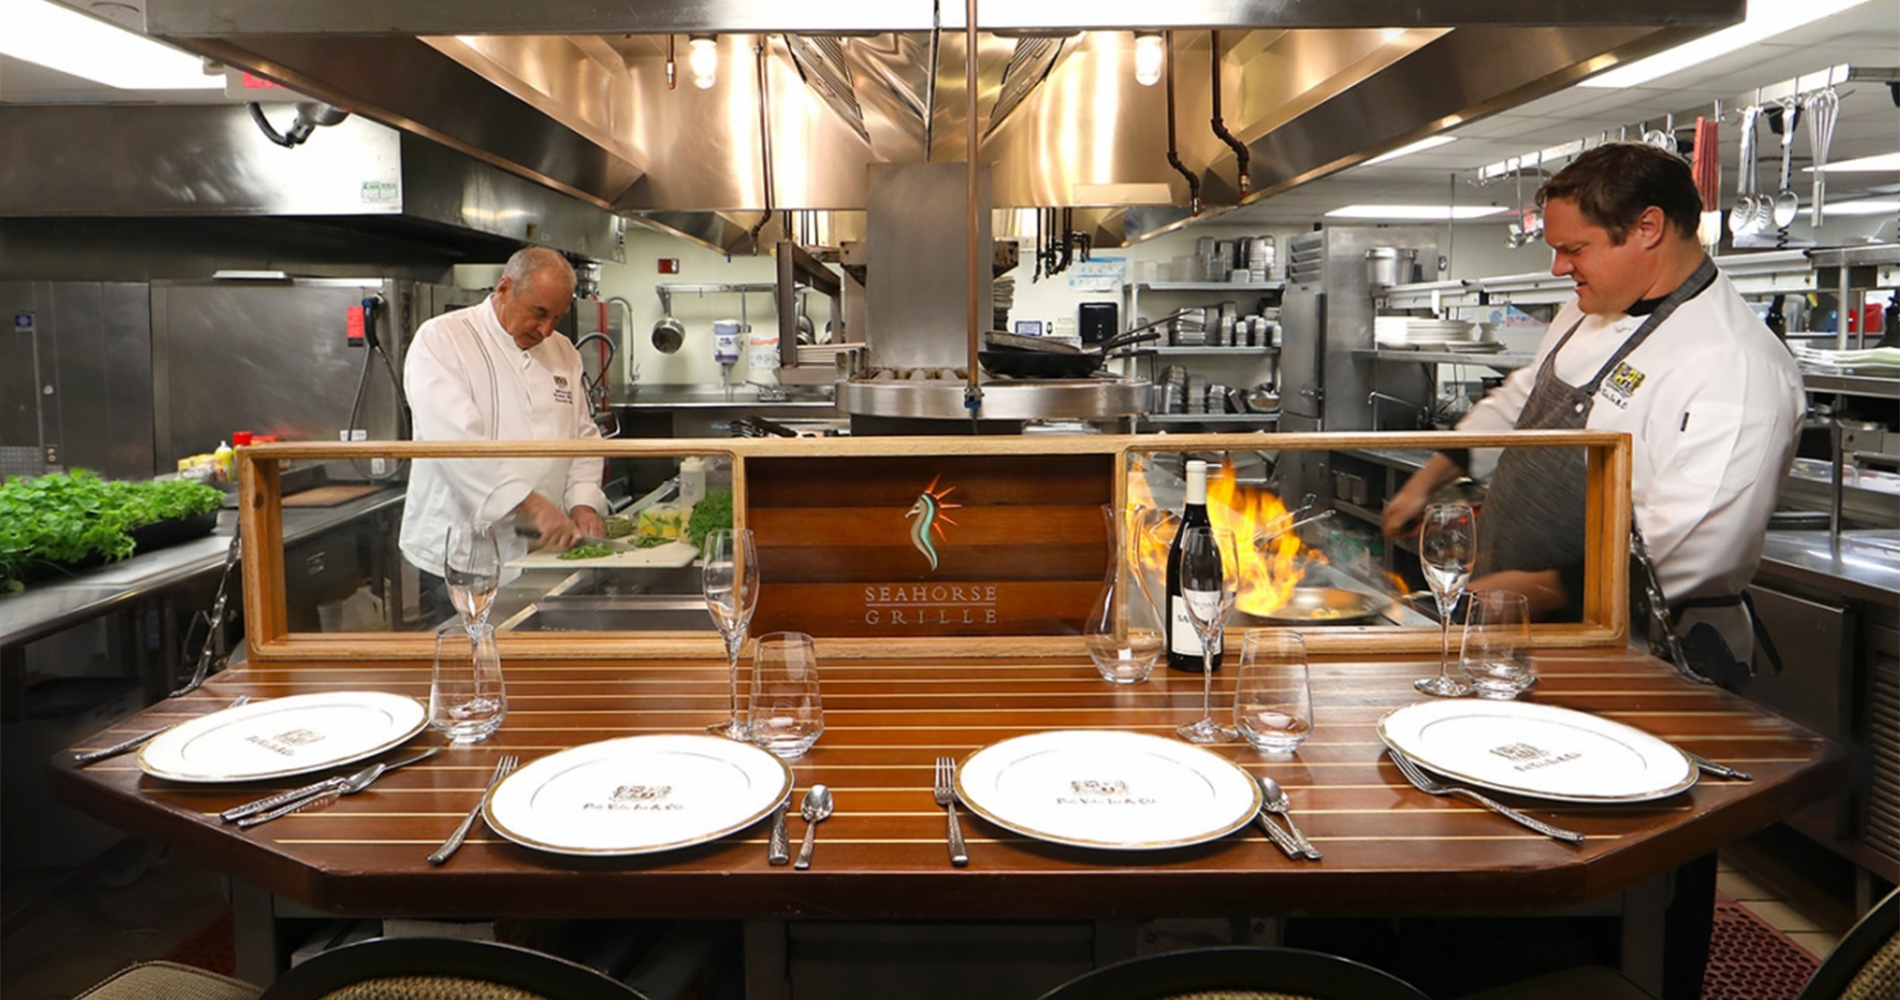 Seahorse-Grille-Chefs-Table